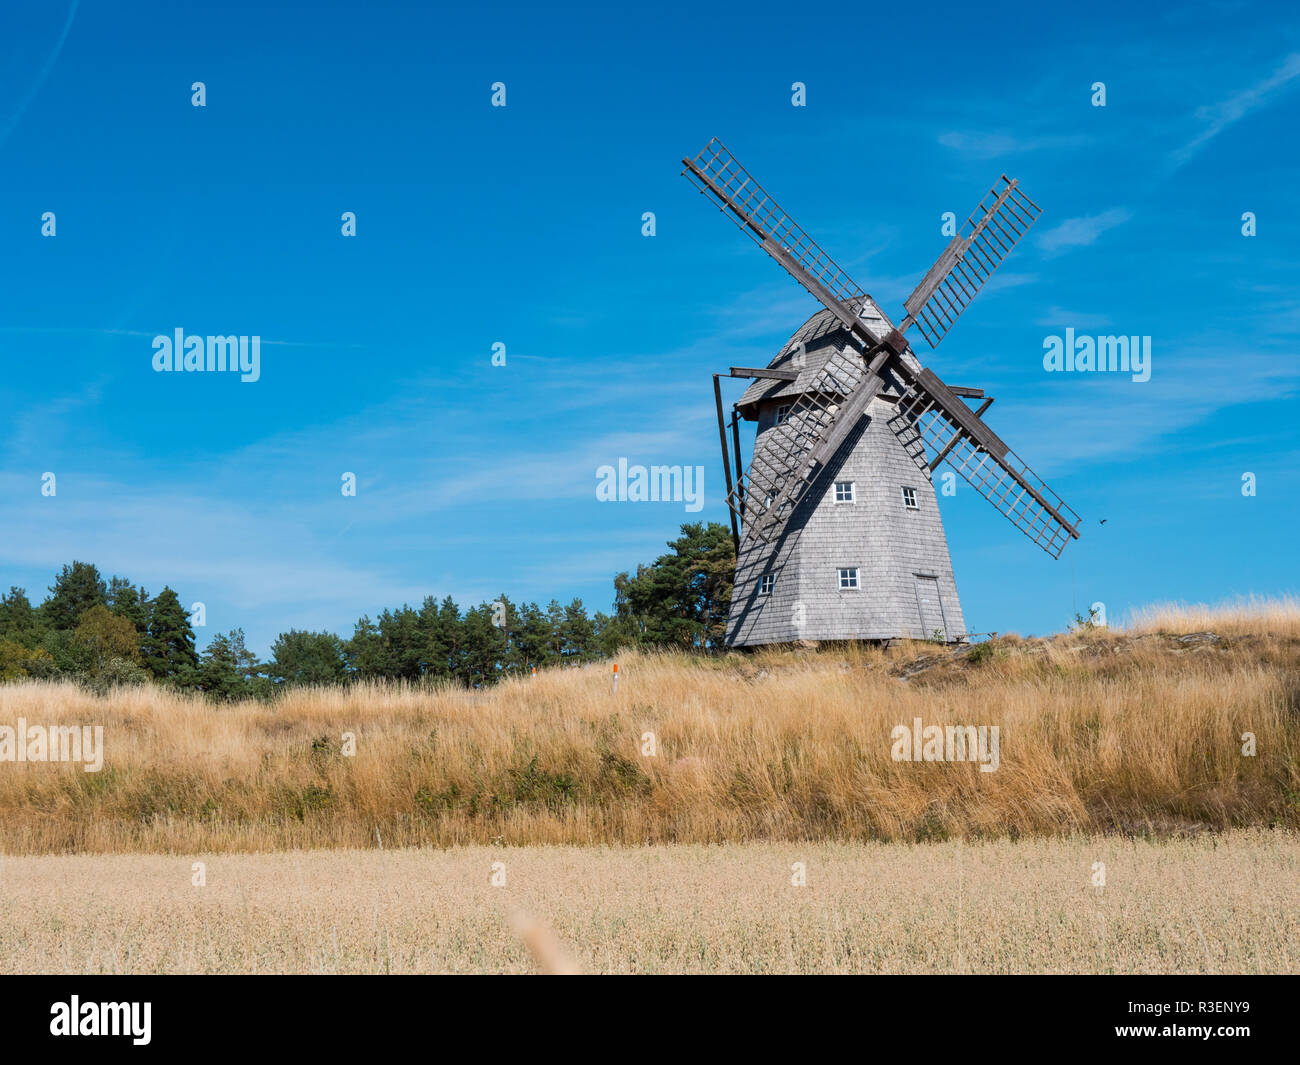 an old Swedish windmill an an autumnal mood - Stock Image